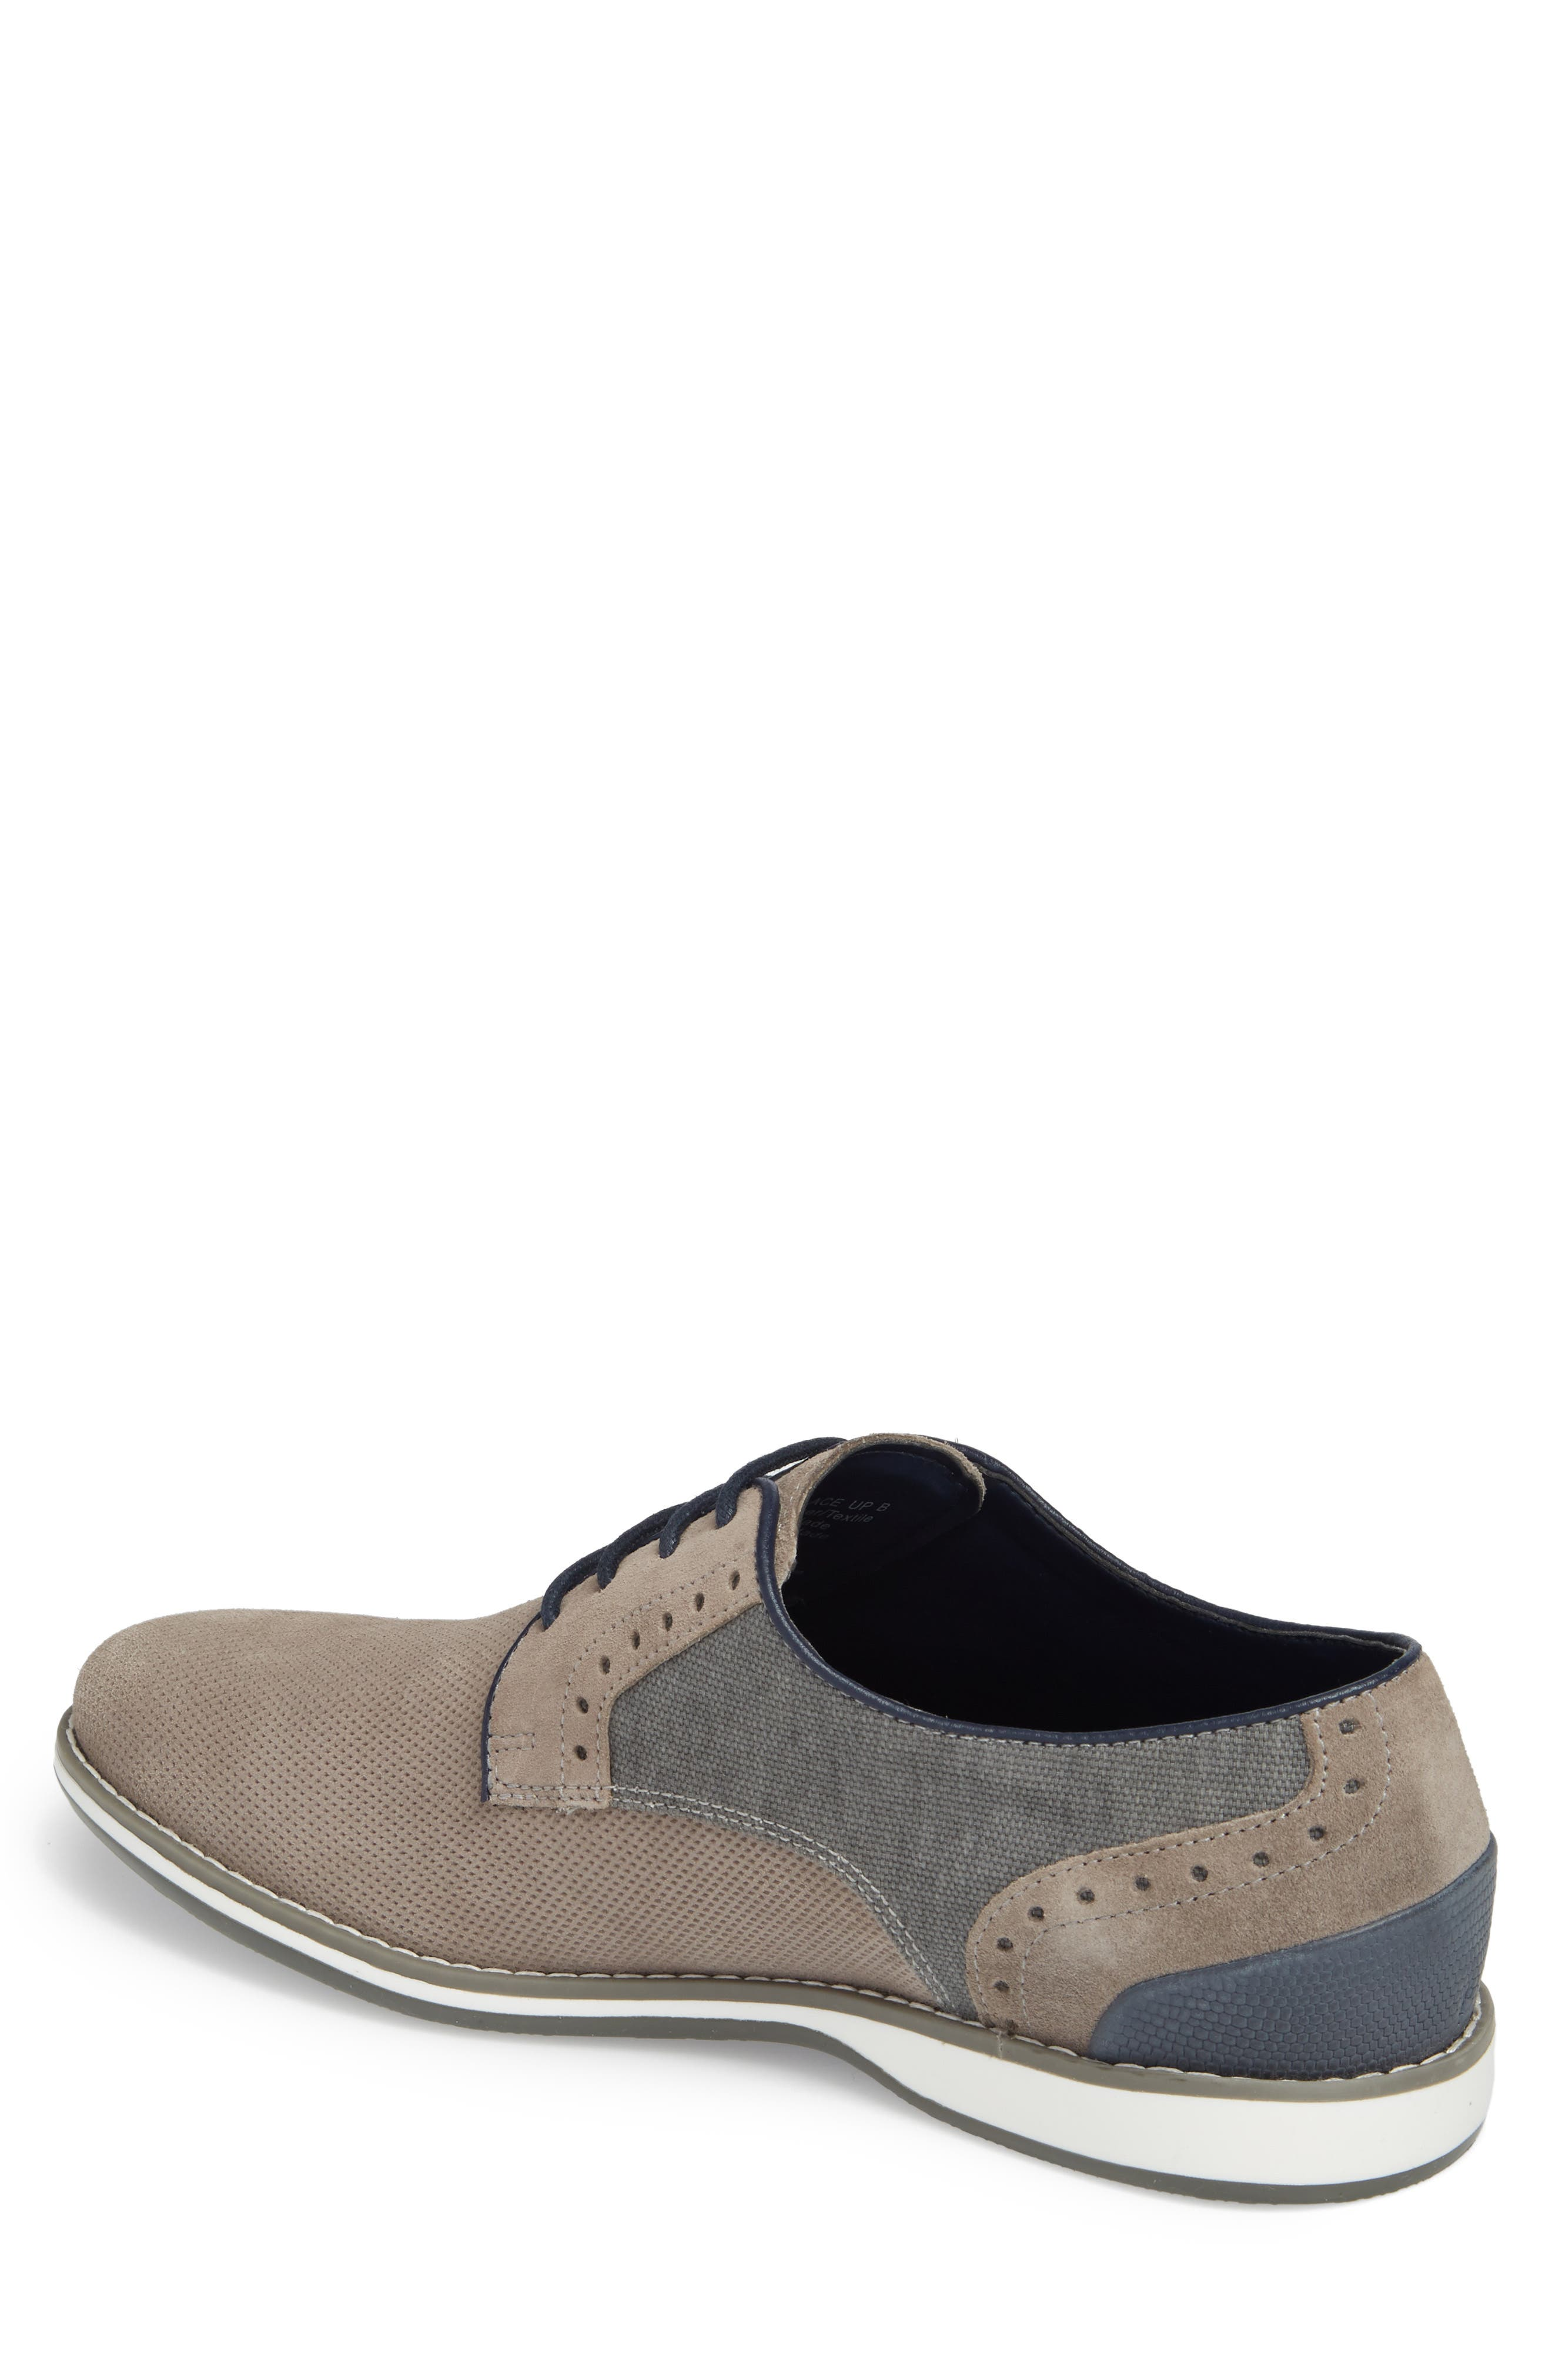 Weiser Lace-up Derby,                             Alternate thumbnail 2, color,                             GREY